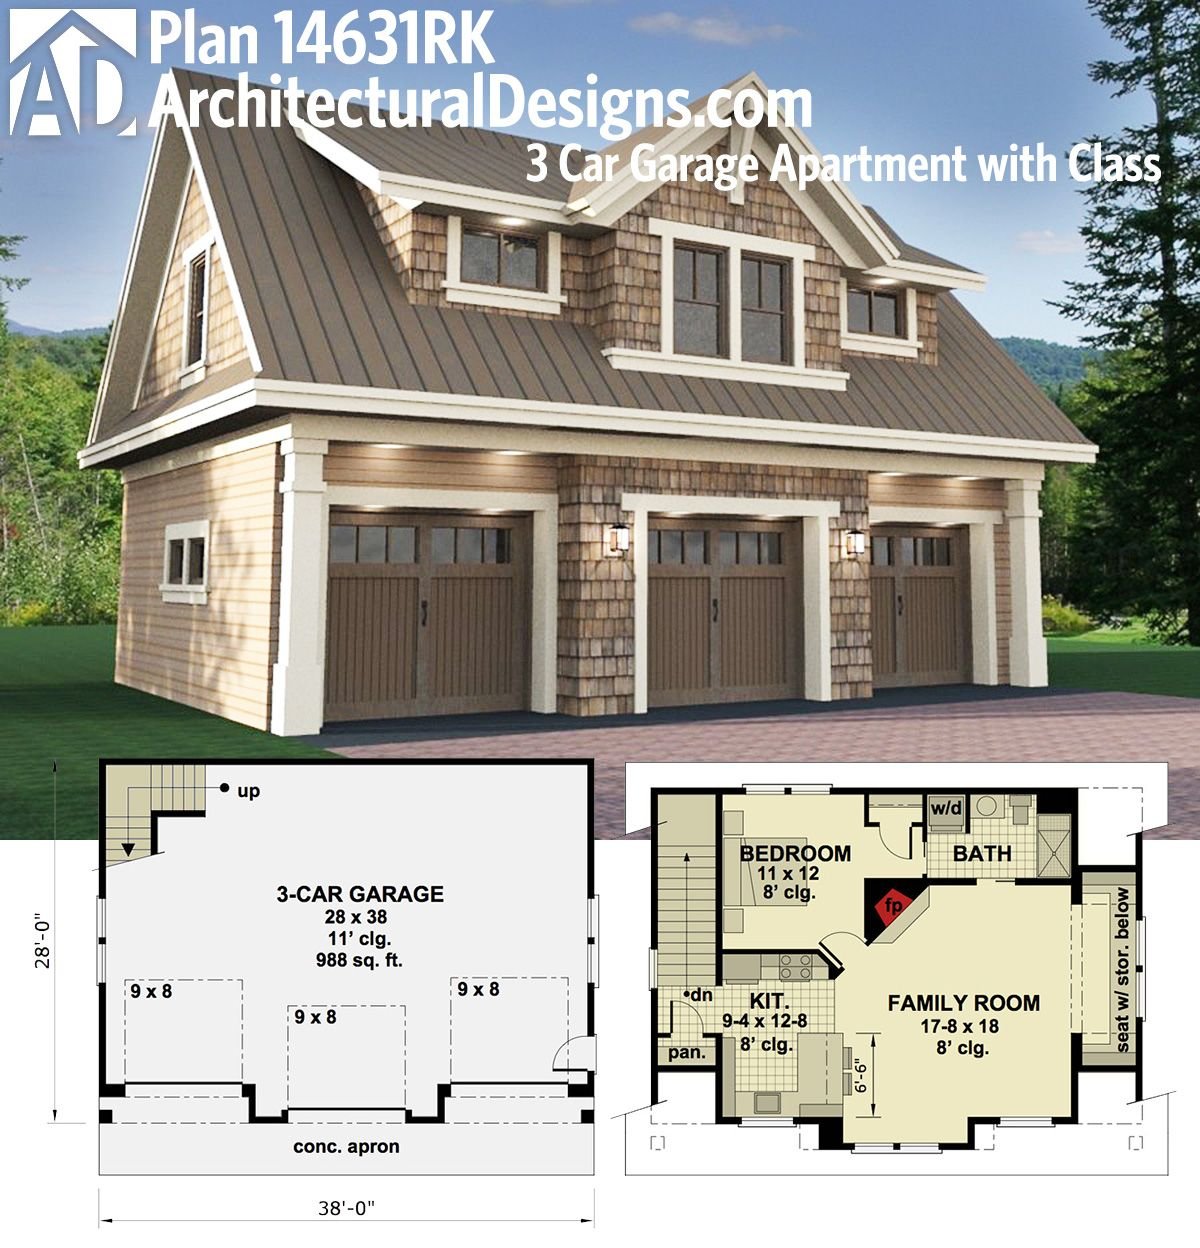 Plan 14631rk 3 car garage apartment with class carriage for Two car garage with loft apartment